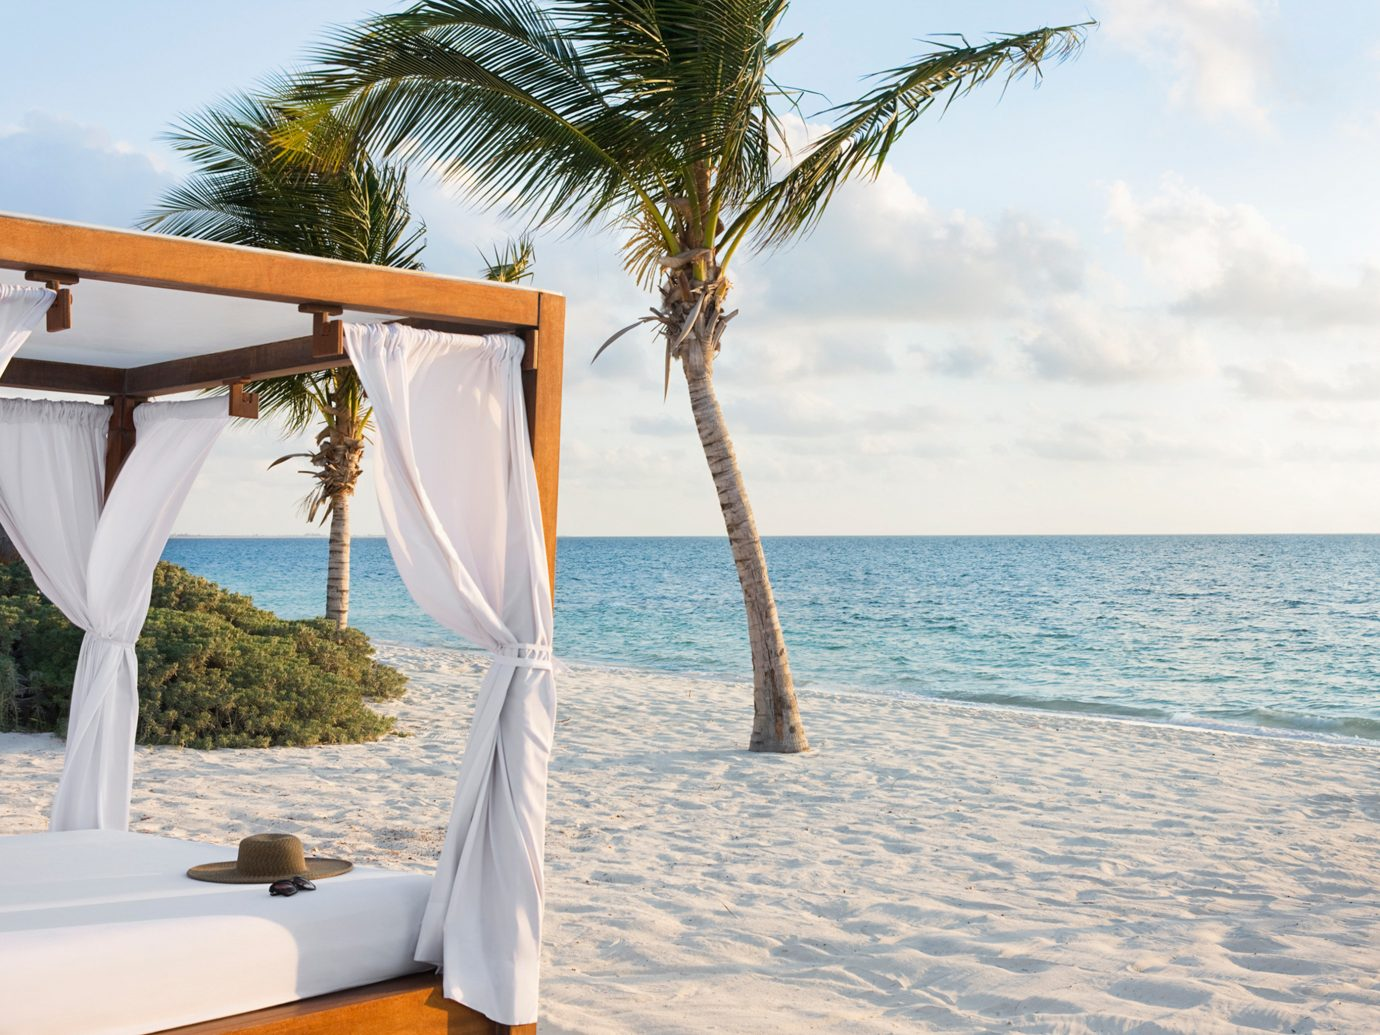 Beach Beachfront Hotels Living Lounge Luxury Ocean Romance Trip Ideas tree sky outdoor water leisure vacation caribbean swimming pool arecales Sea Resort palm sandy shore day